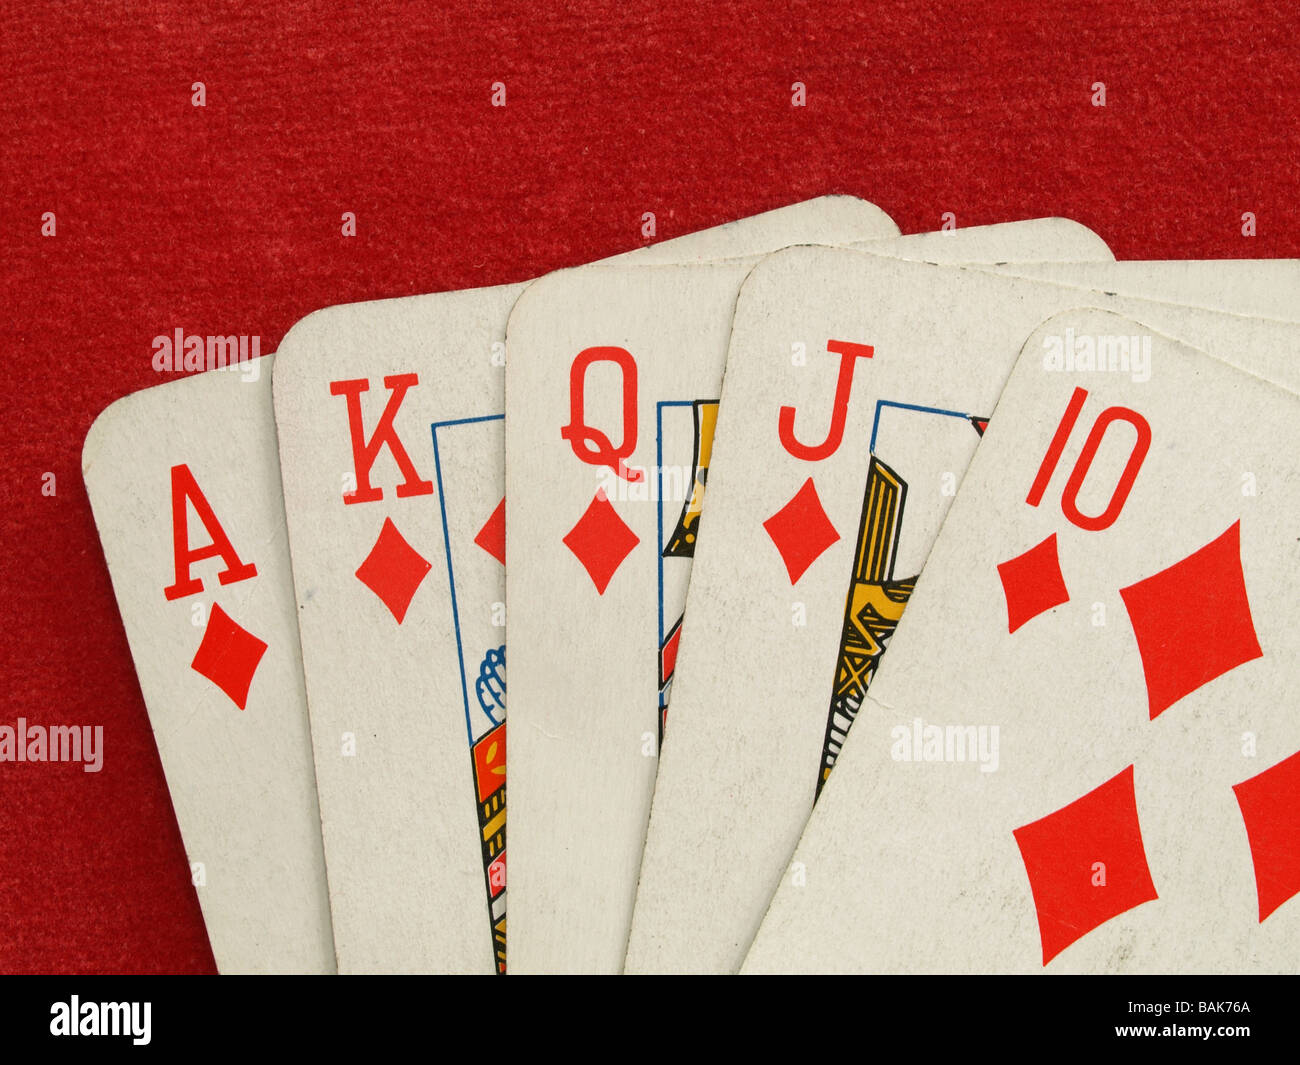 A Royal Flush Five Consecutive Face Cards Of The Same Suit Is The Best Possible Hand In Draw Or Stud